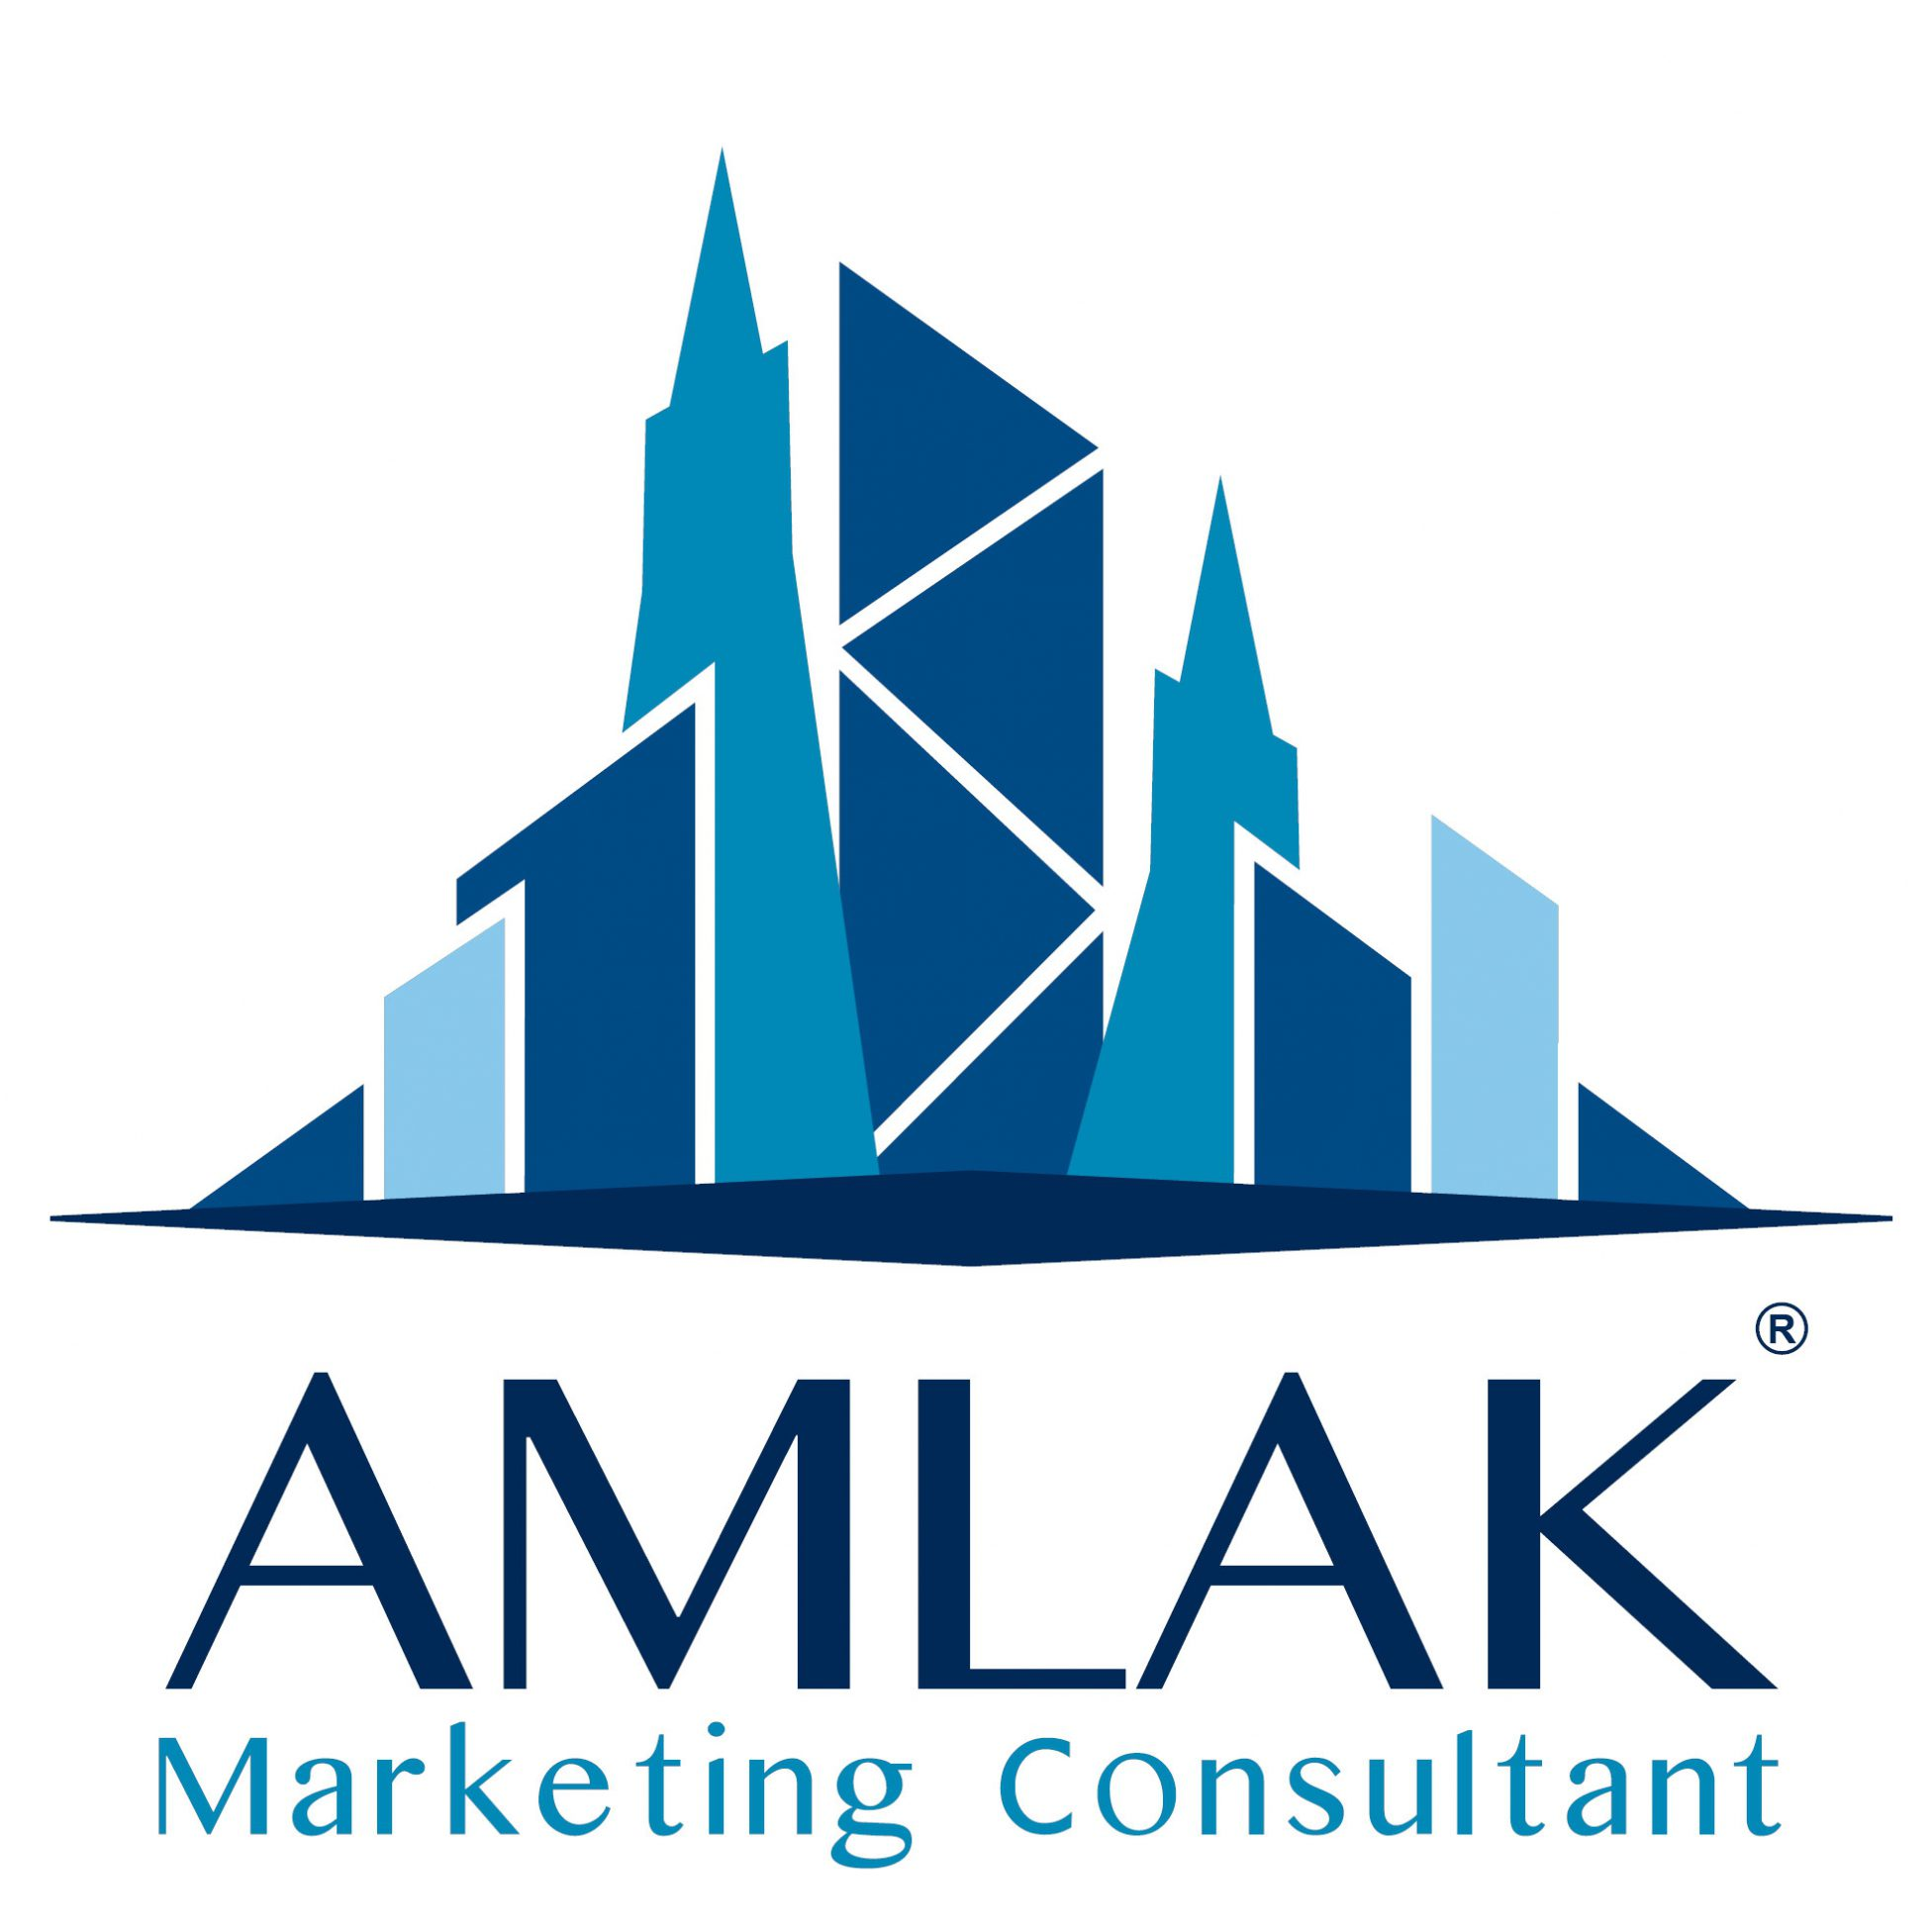 Amlak Marketing Consultant